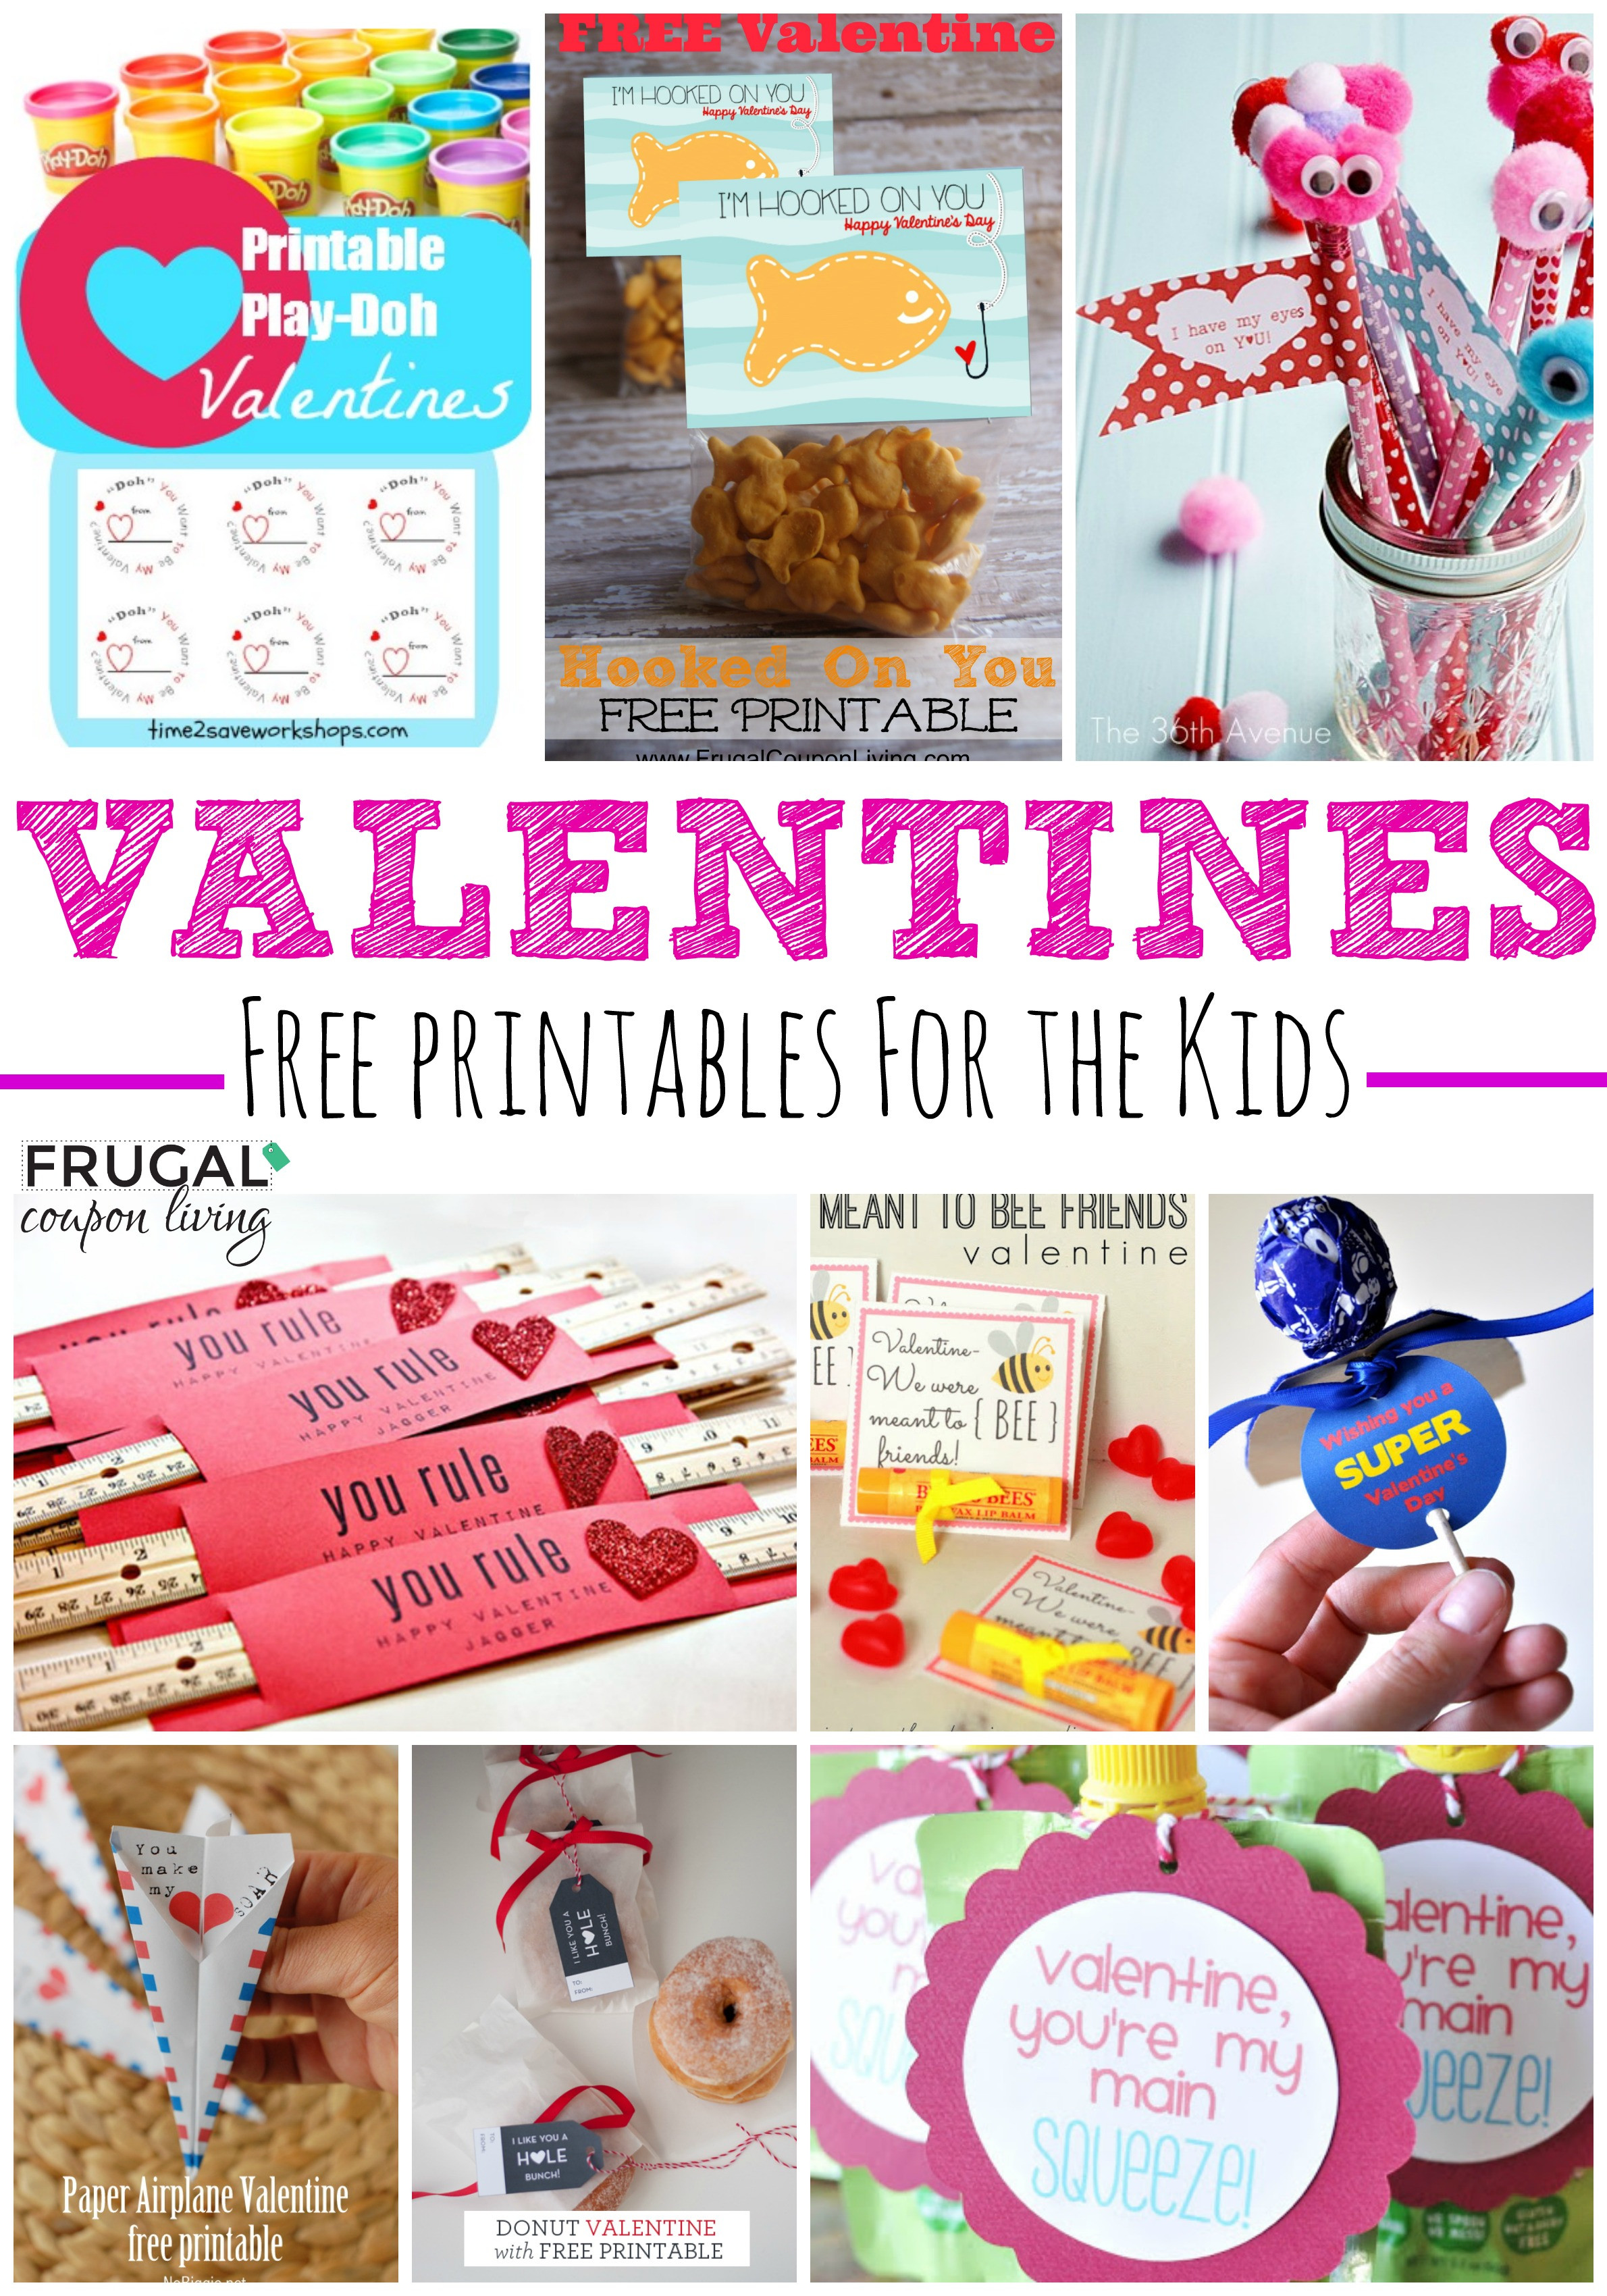 Best ideas about DIY Kids Valentines . Save or Pin 20 Frugal DIY Kids Valentines Now.